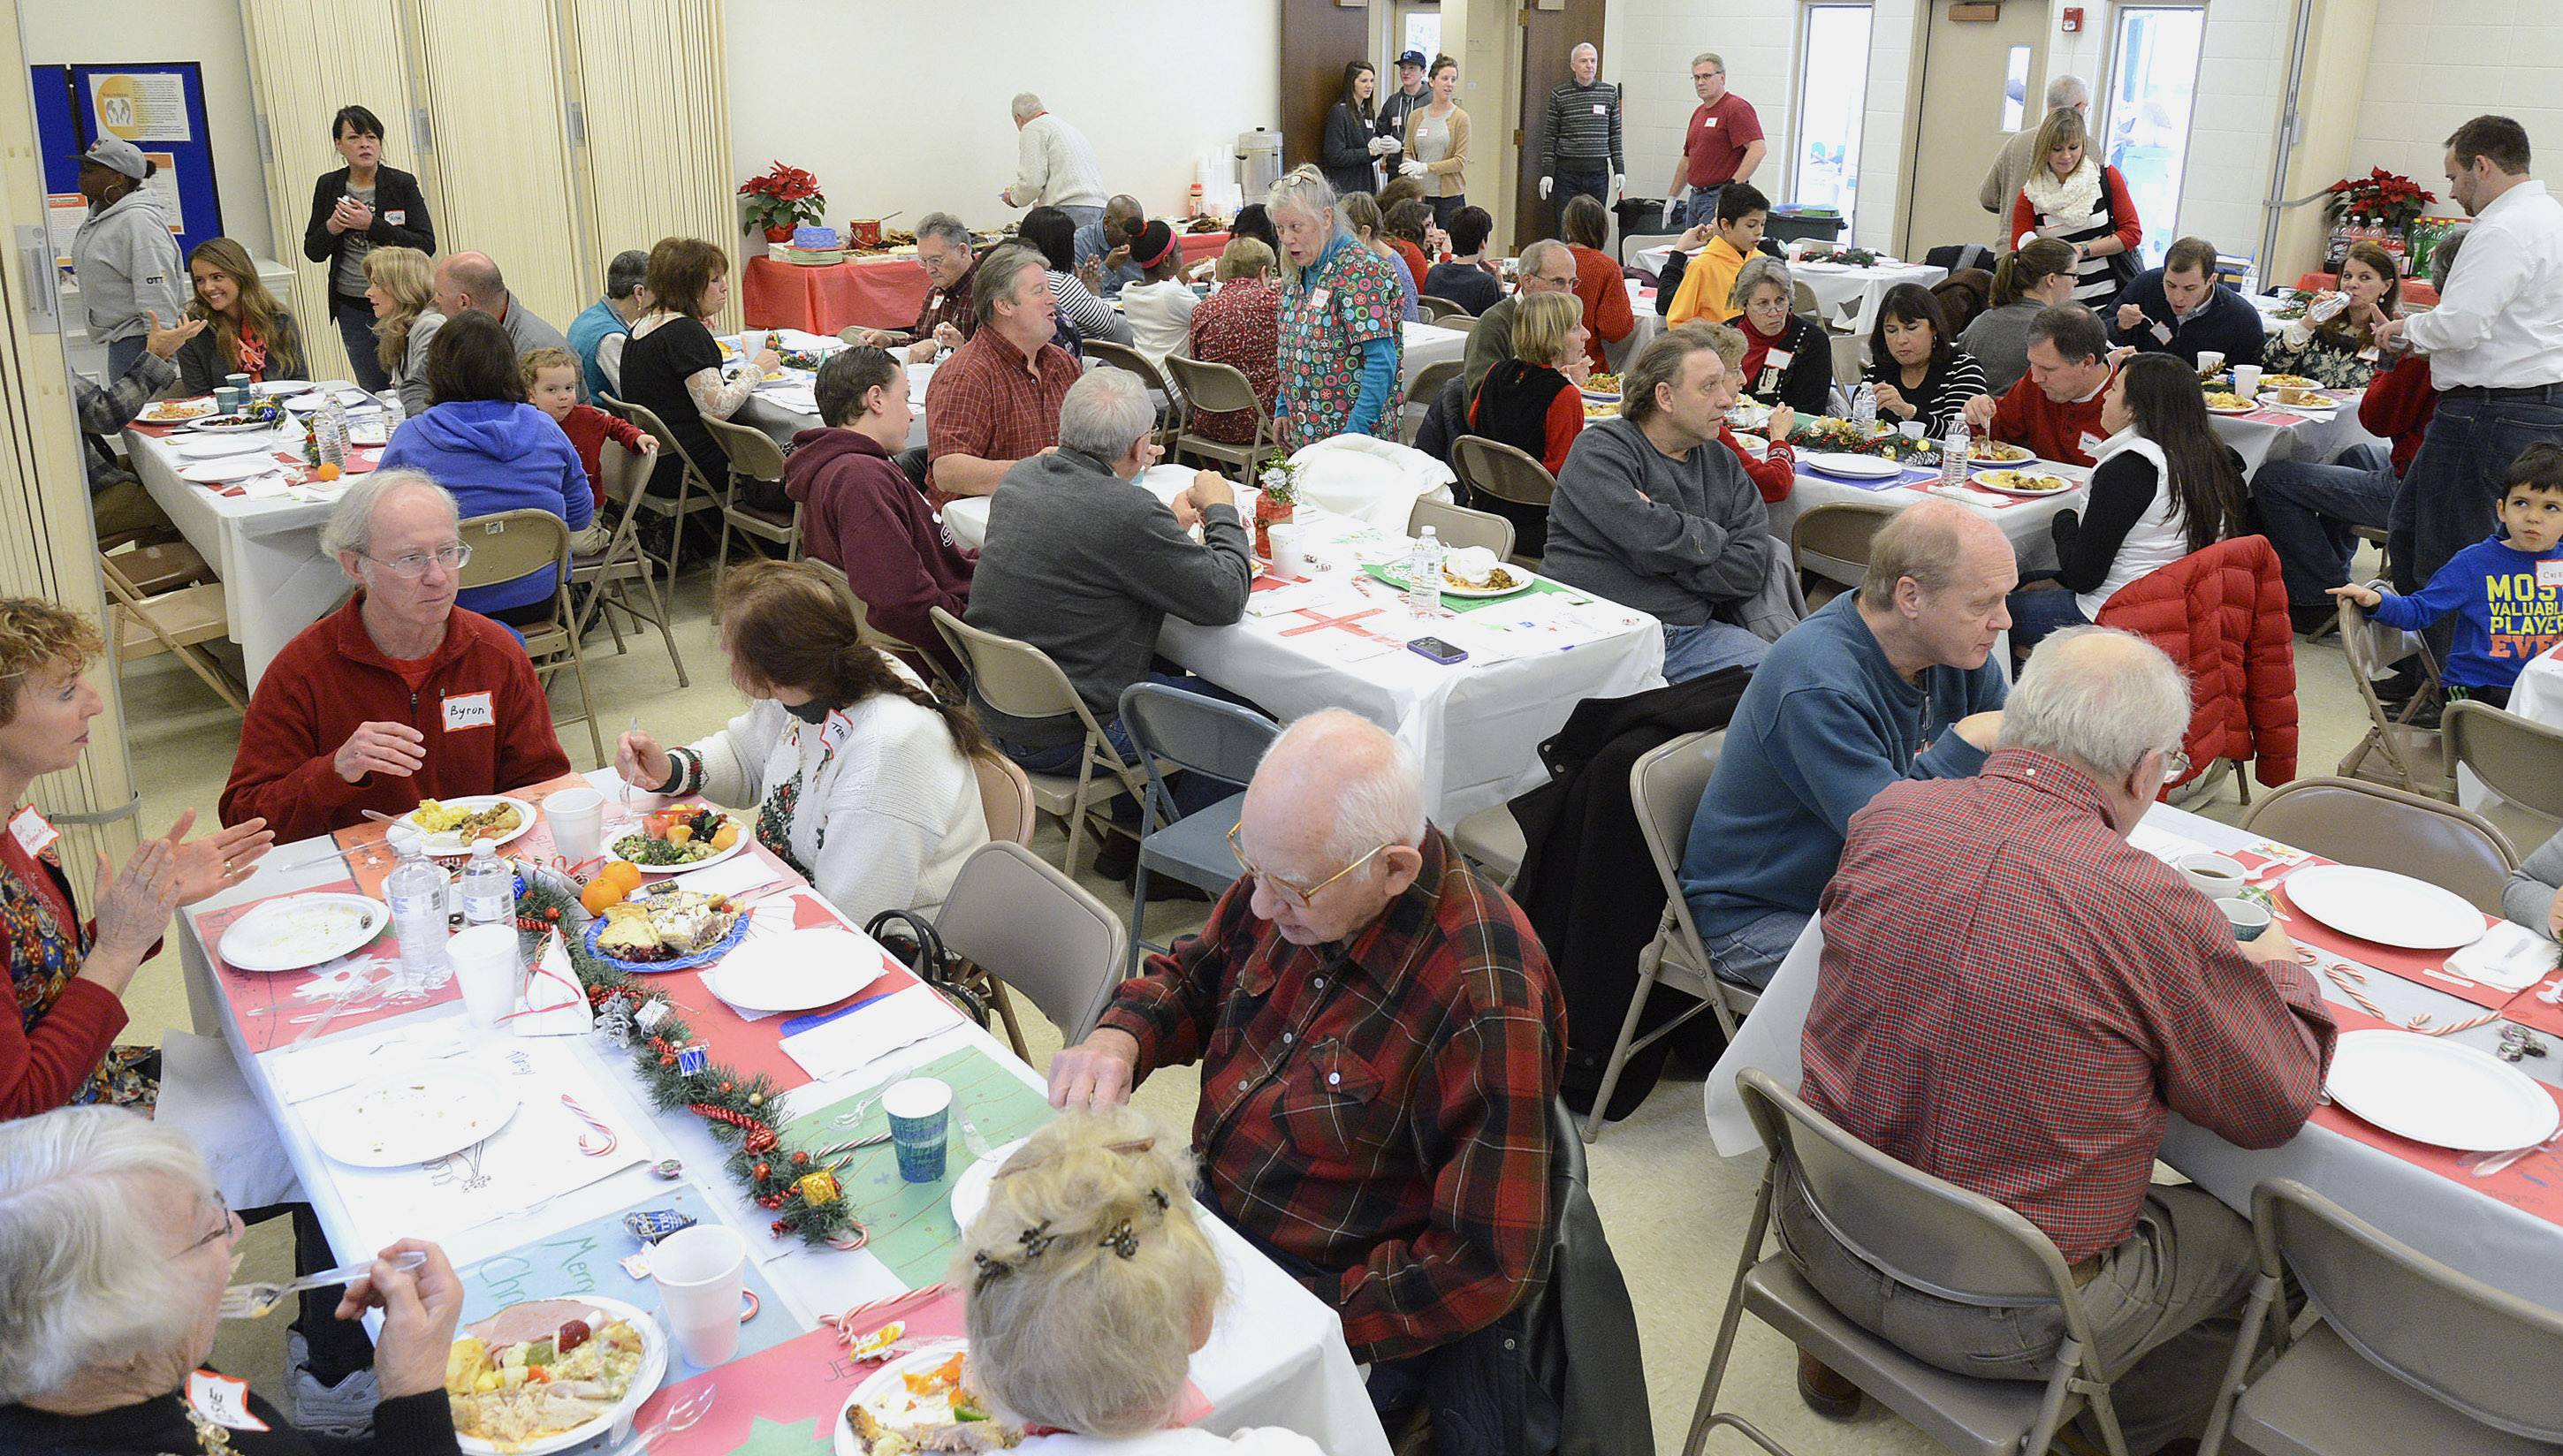 Volunteers are needed to put on Lazarus House's annual Thanksgiving Community Feast and the Community Christmas Brunch. Consider cooking, cleaning or providing food or supplies.